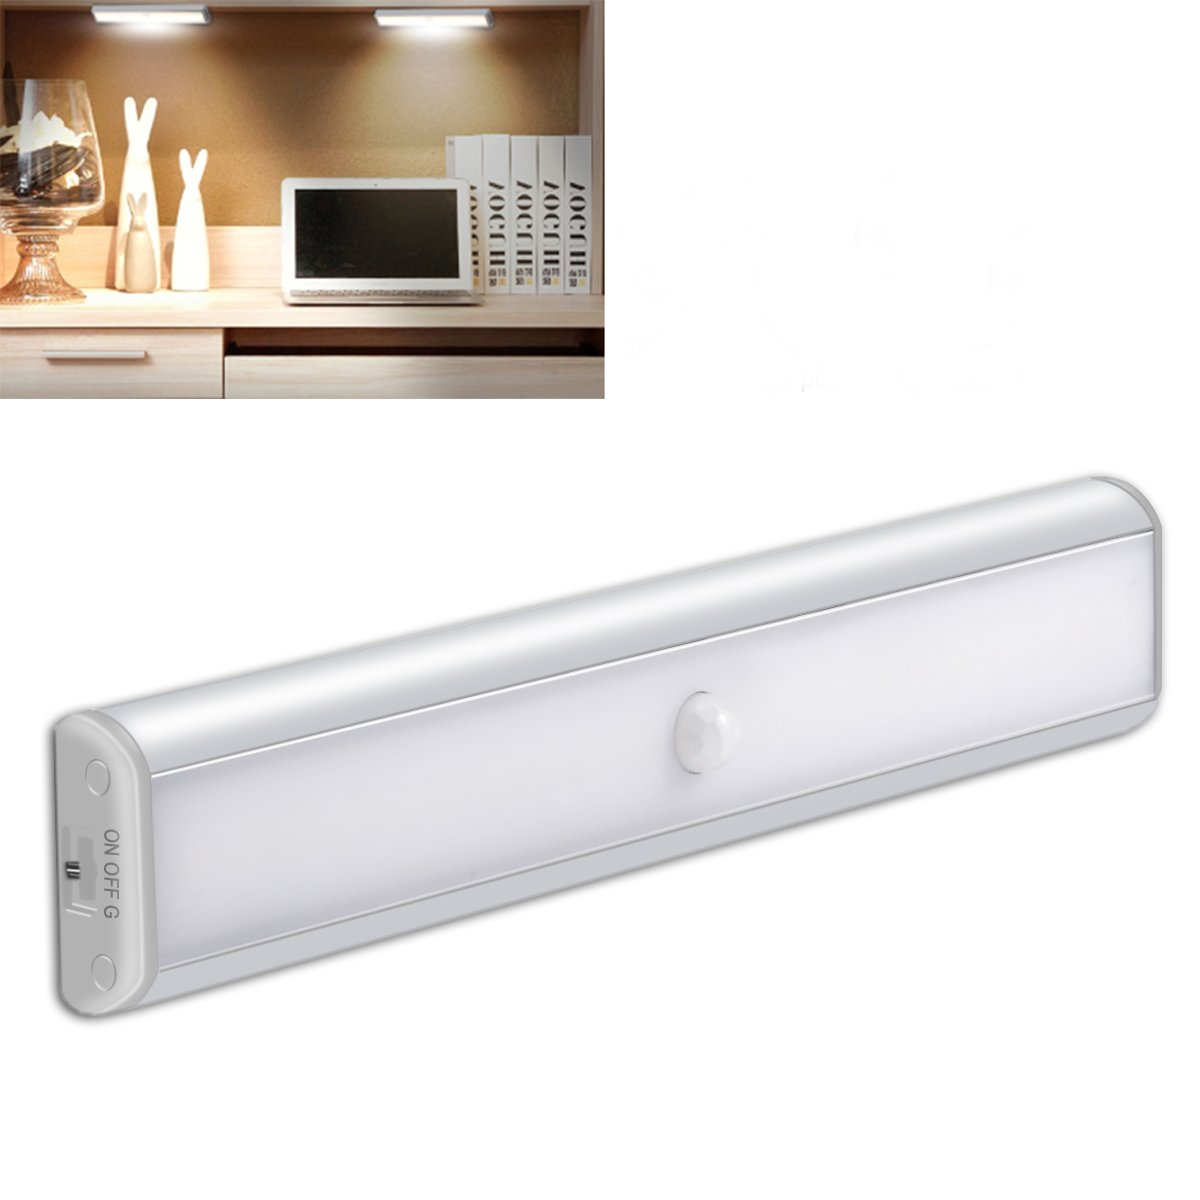 Motion Sensor Cabinet Light Night 850 mAh Battery,YIGER USB Rechargeable 10 LED with Removable Magnet+3M Adhesive ,Hallway/Wardrobe/Washroom /Stairs/Storage Room(Silver)